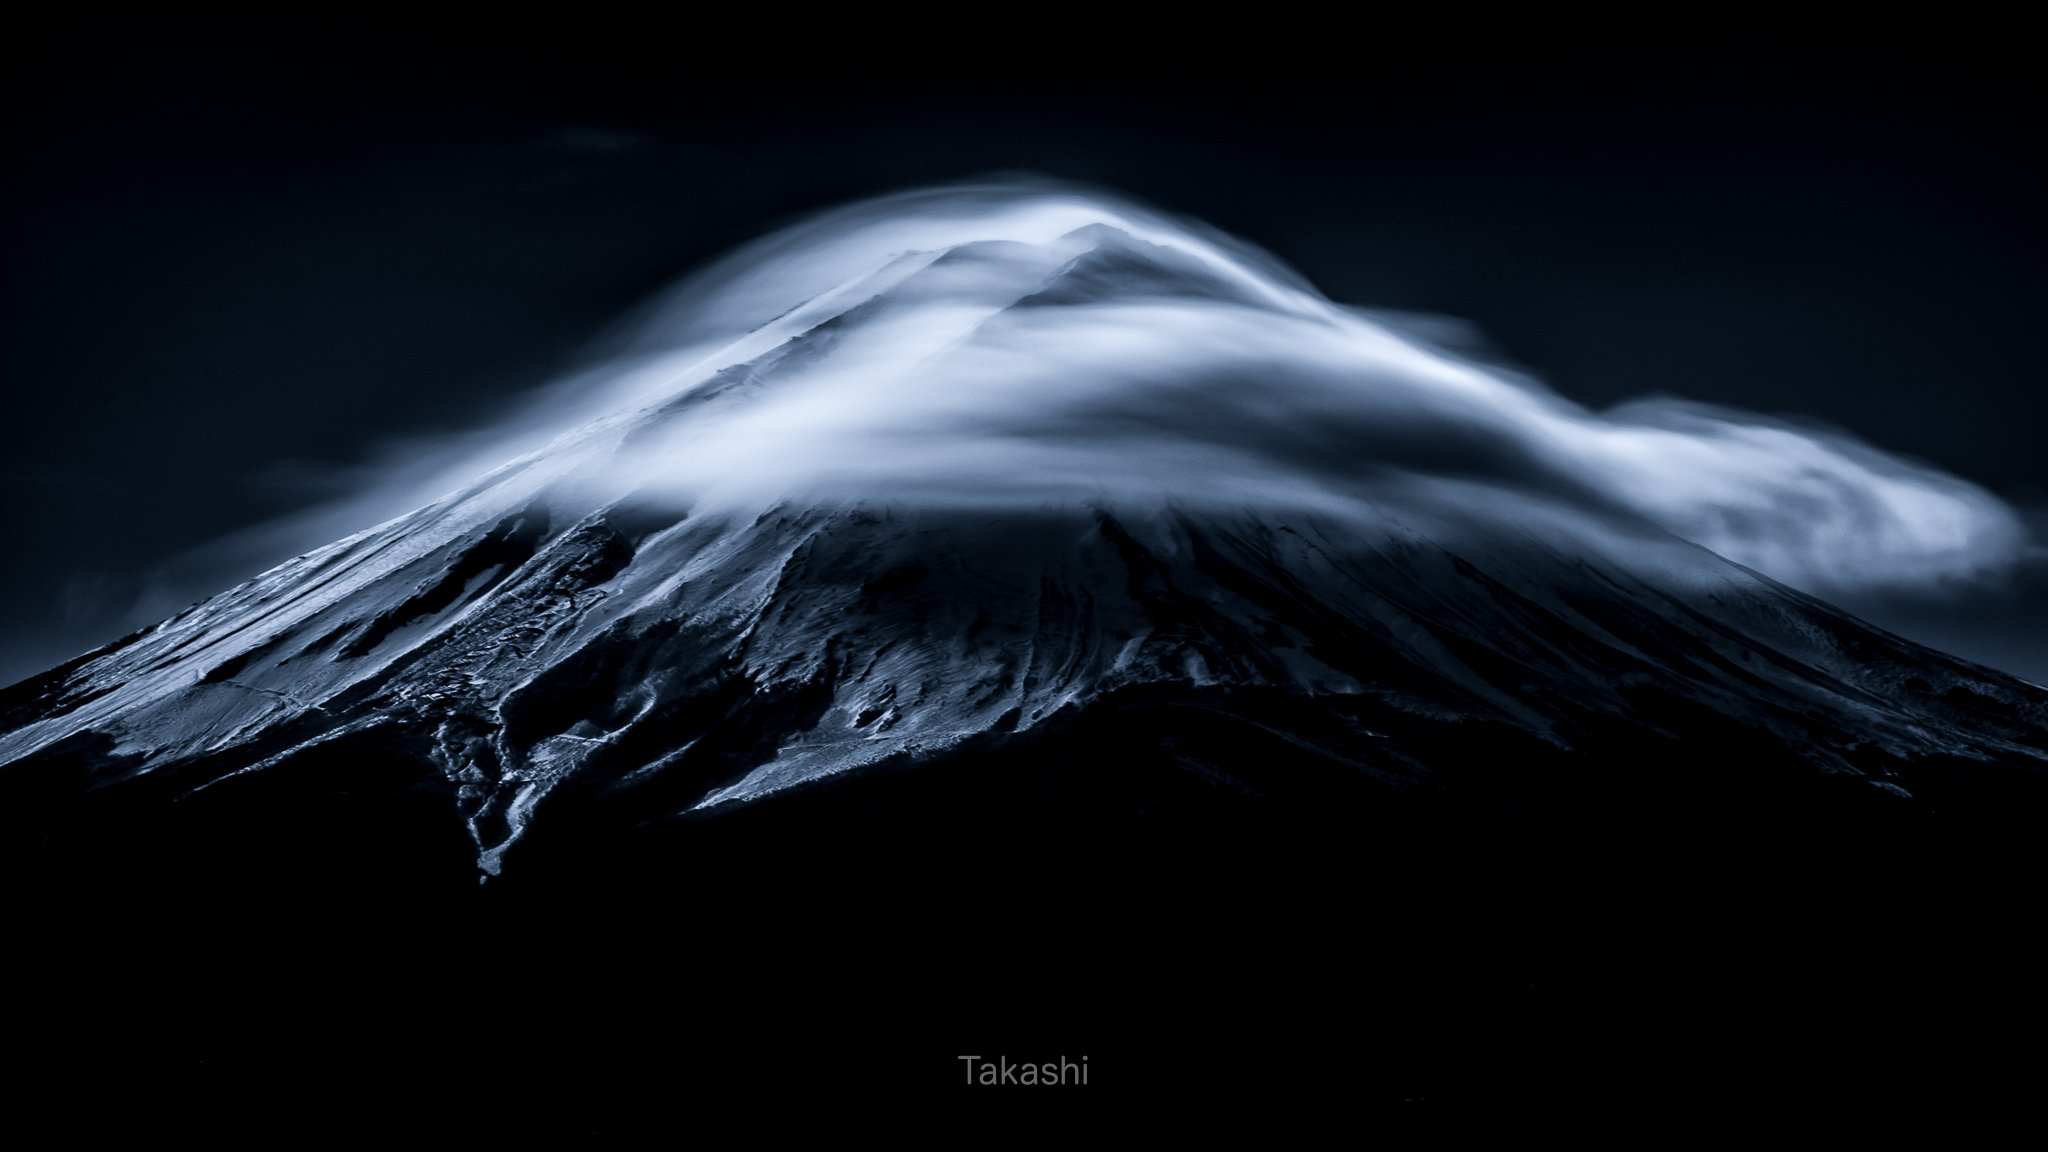 fuji,mountain,cloud,blue,sky,snow,amazing,wonderful,beautiful,, Takashi